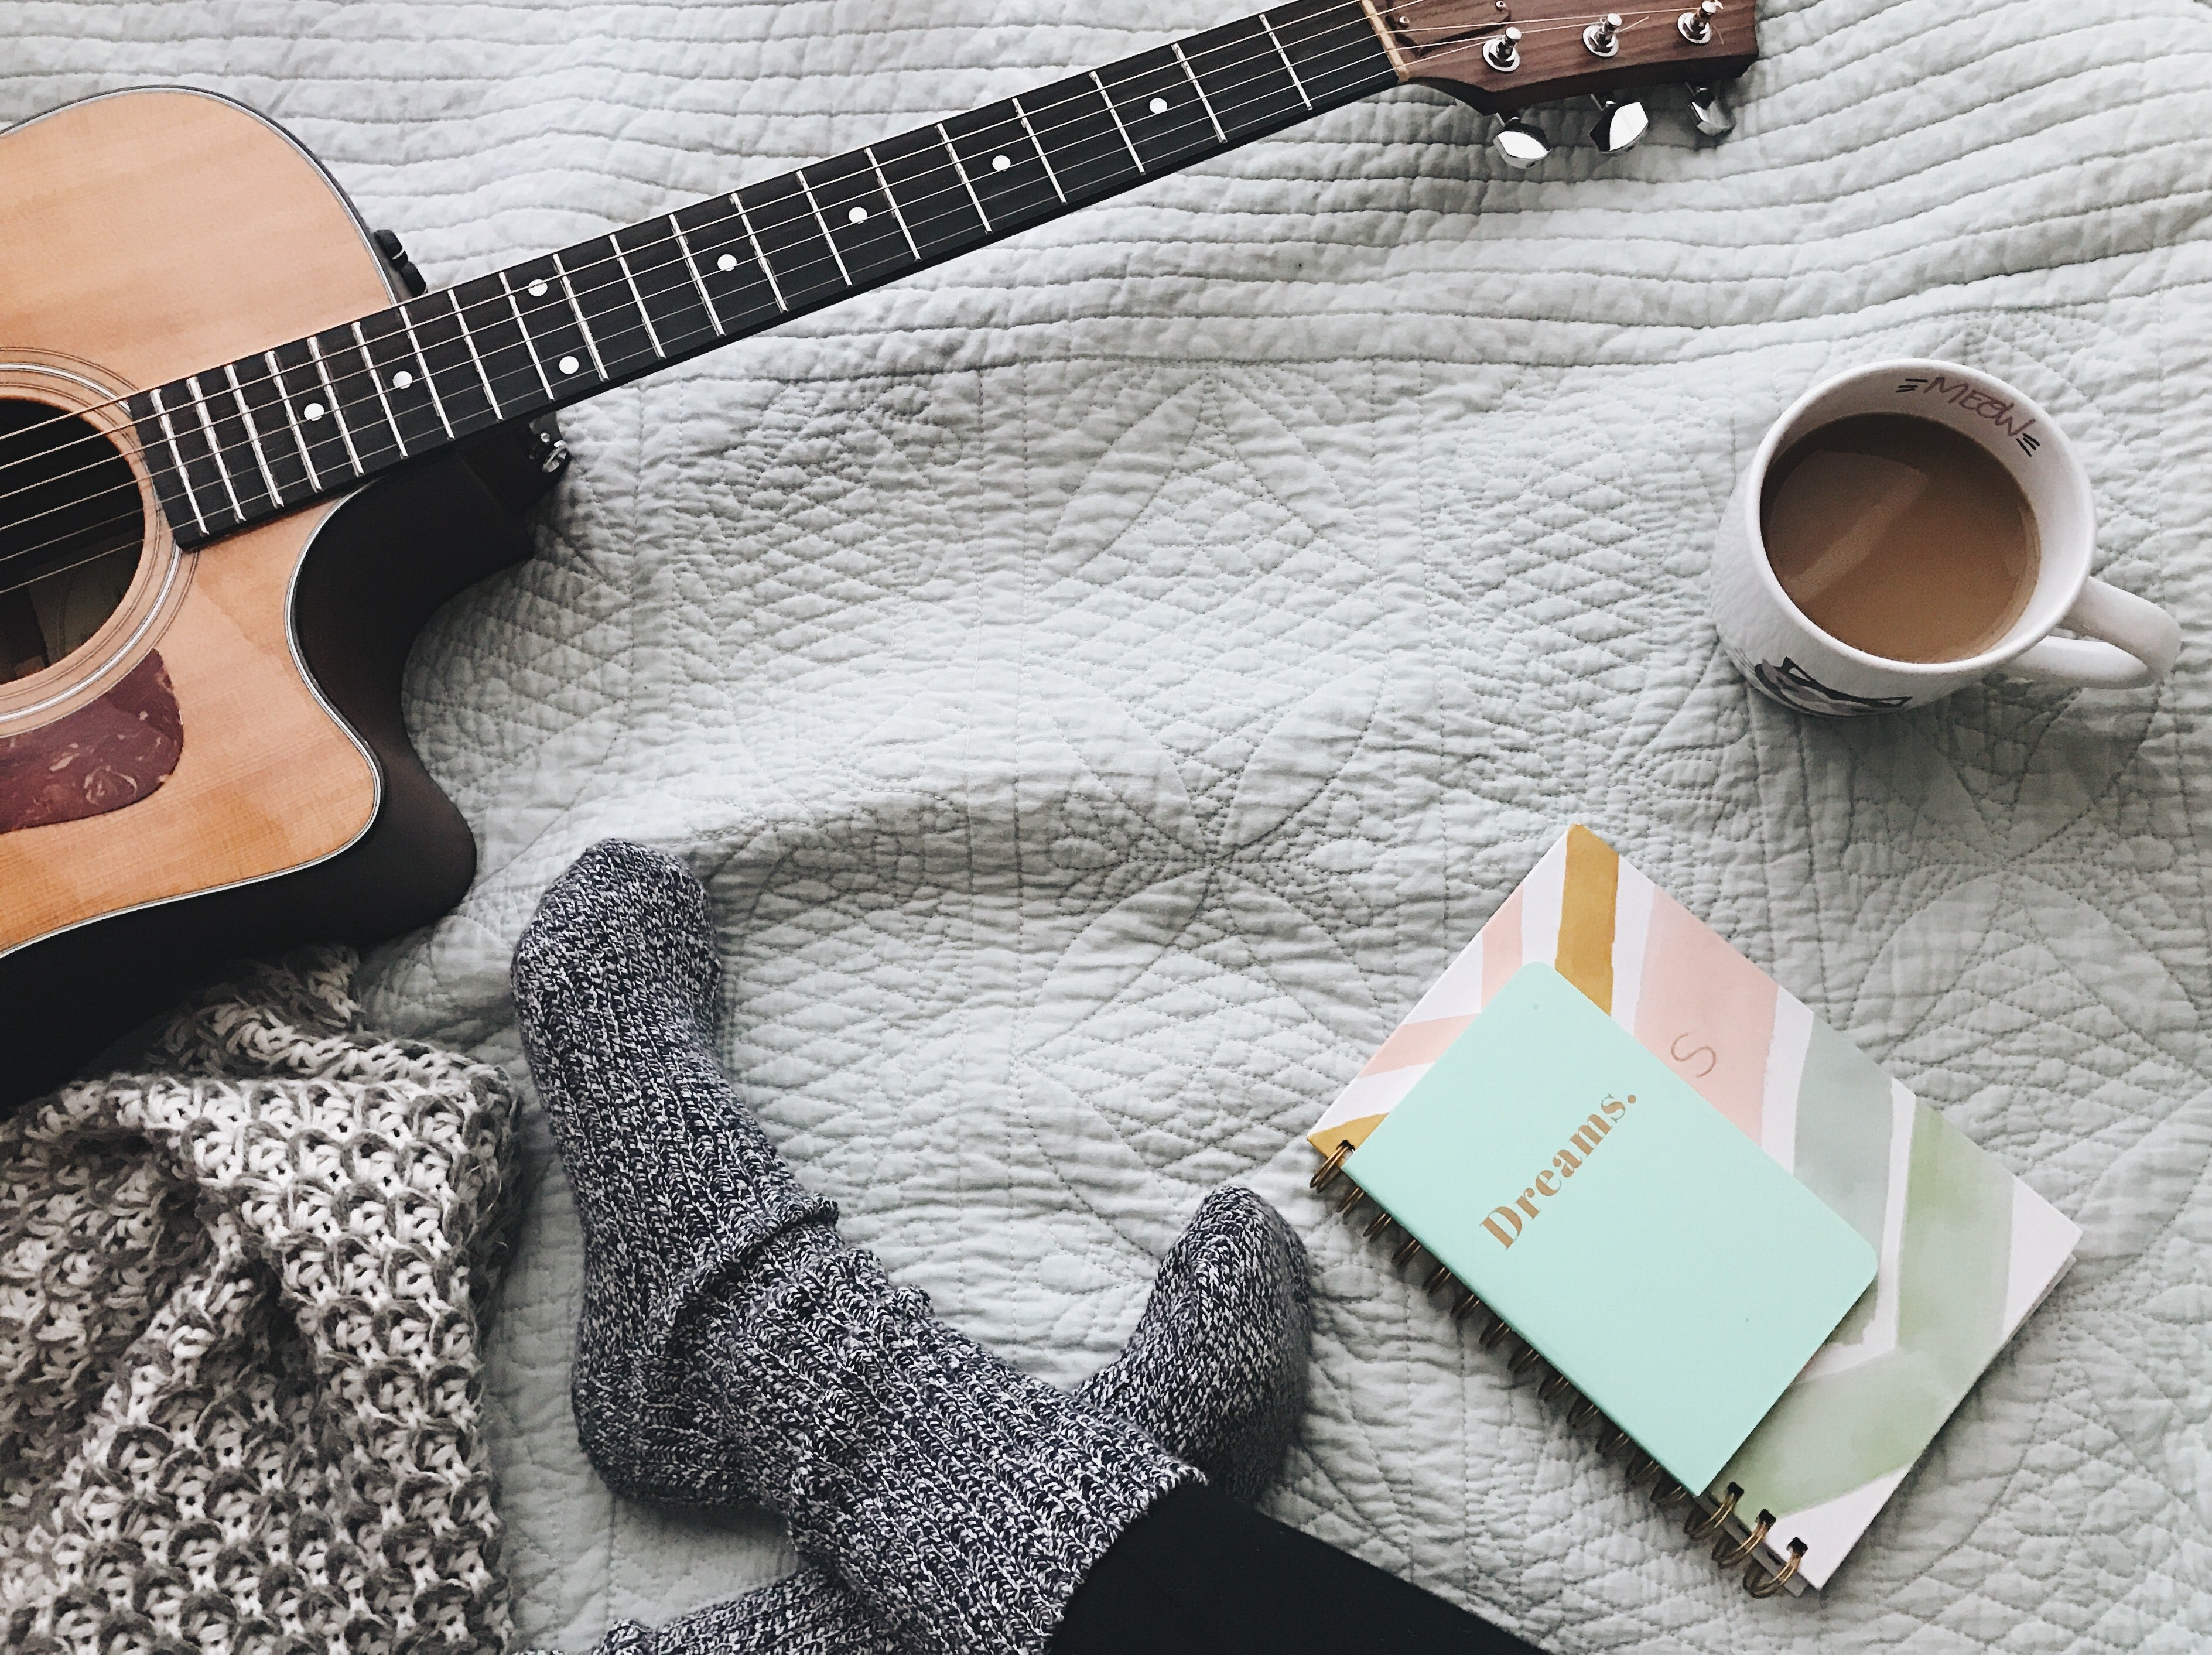 Hygee your day: How to bring coziness into your daily routine